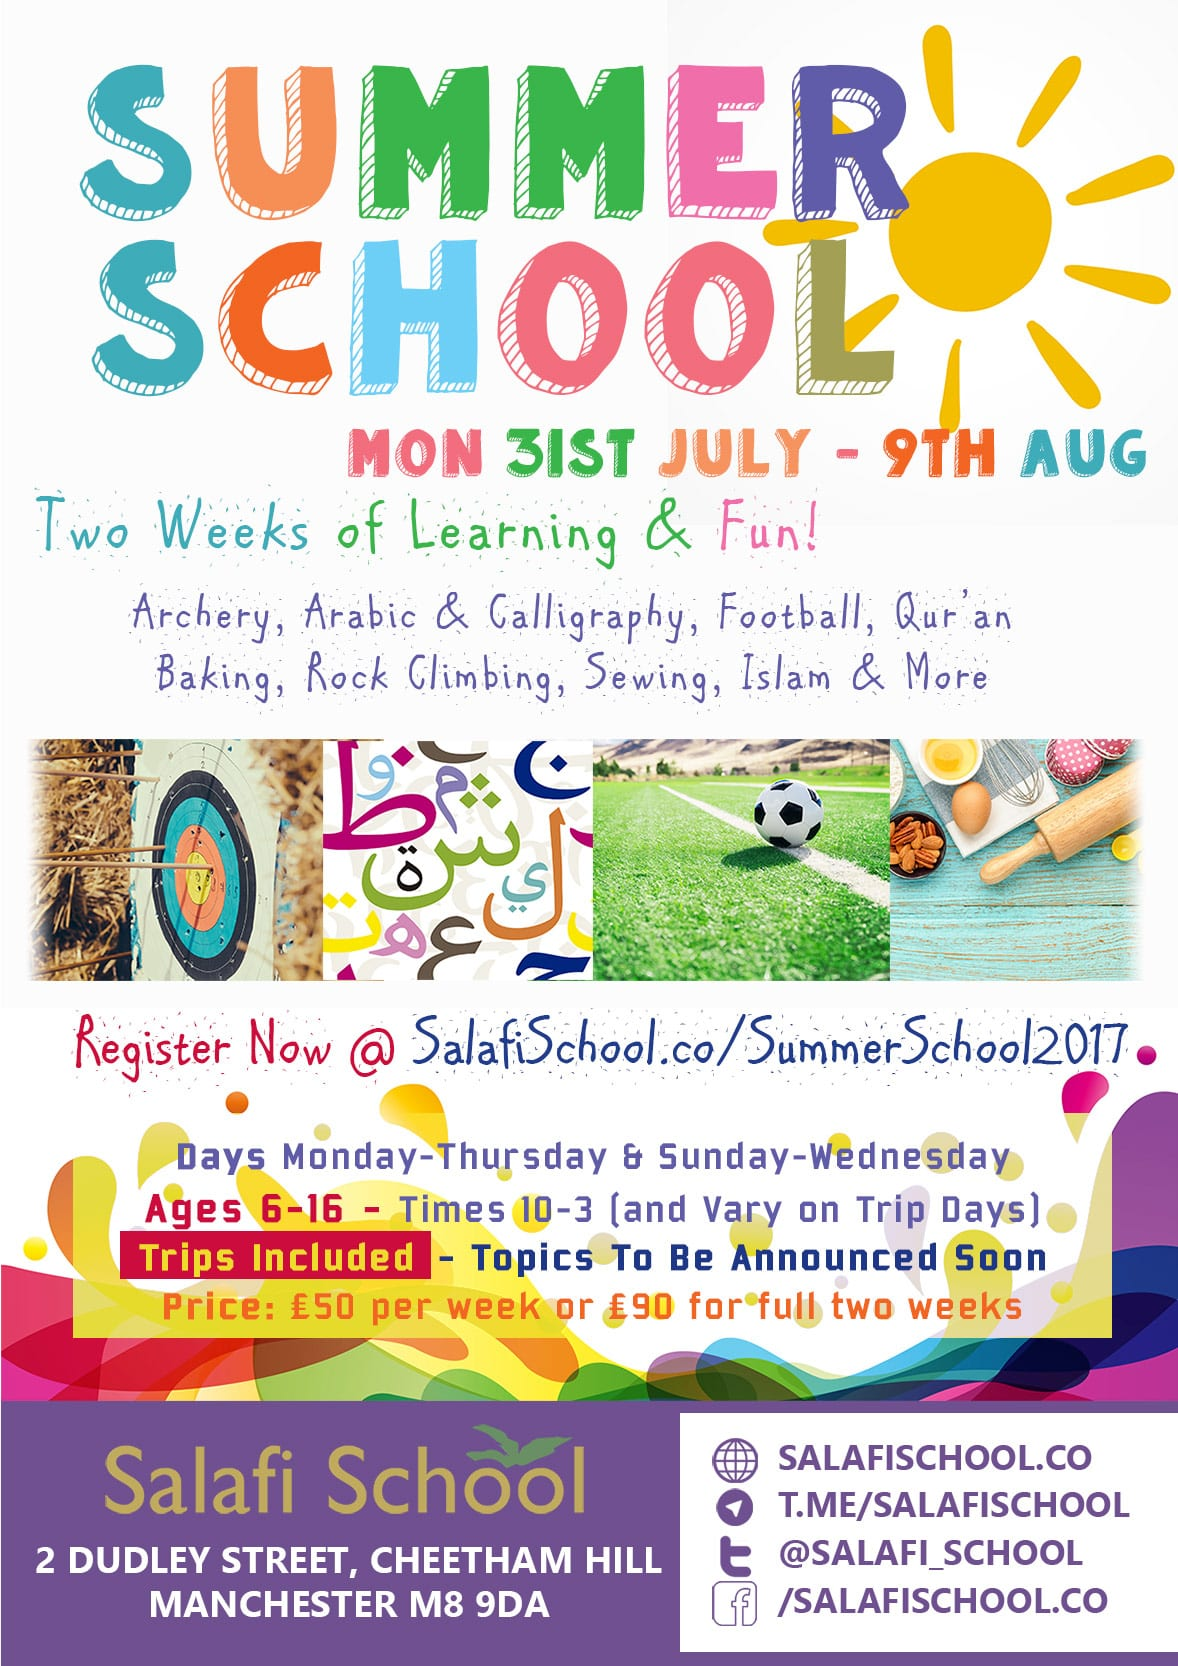 Summer School 2017 – Sign Up Your Children for Two Weeks of Activities, Tarbiyyah & Trips